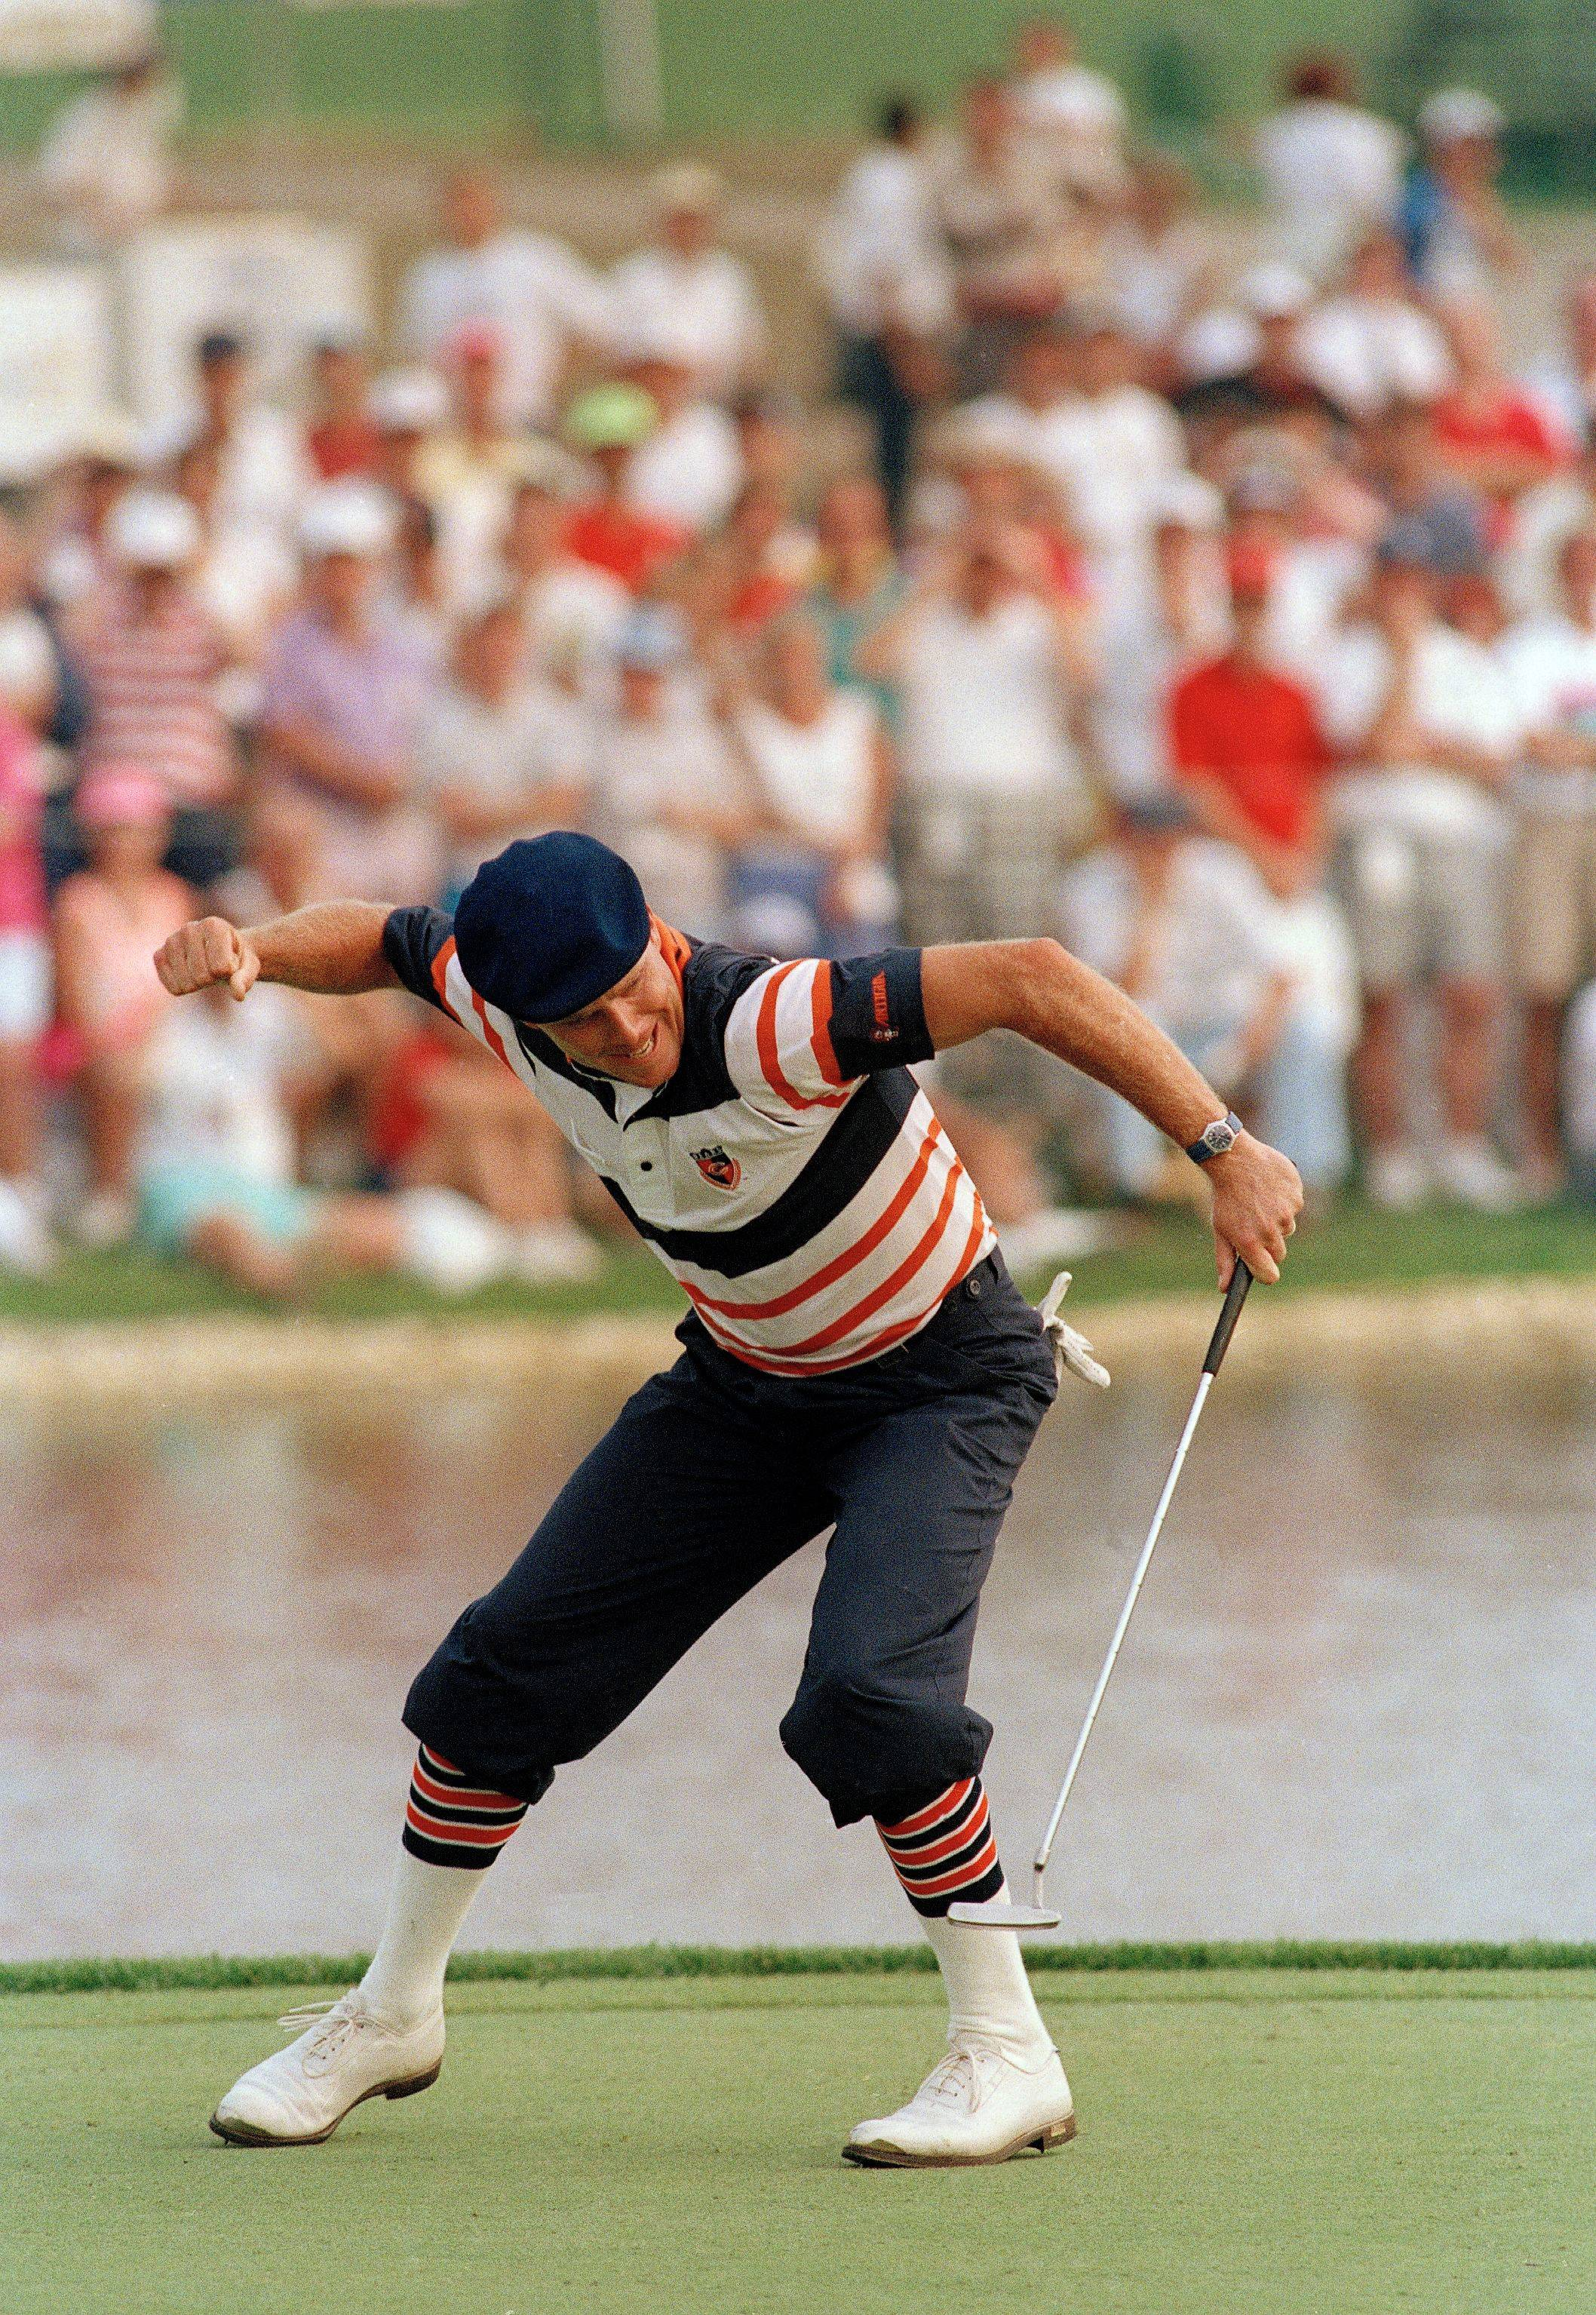 The late Payne Stewart, who won the PGA Championship in 1989 at Kemper Lakes, will be remembered at a fundraising reception next week at the Hawthorn Woods golf course, which is also marking its 35th year.